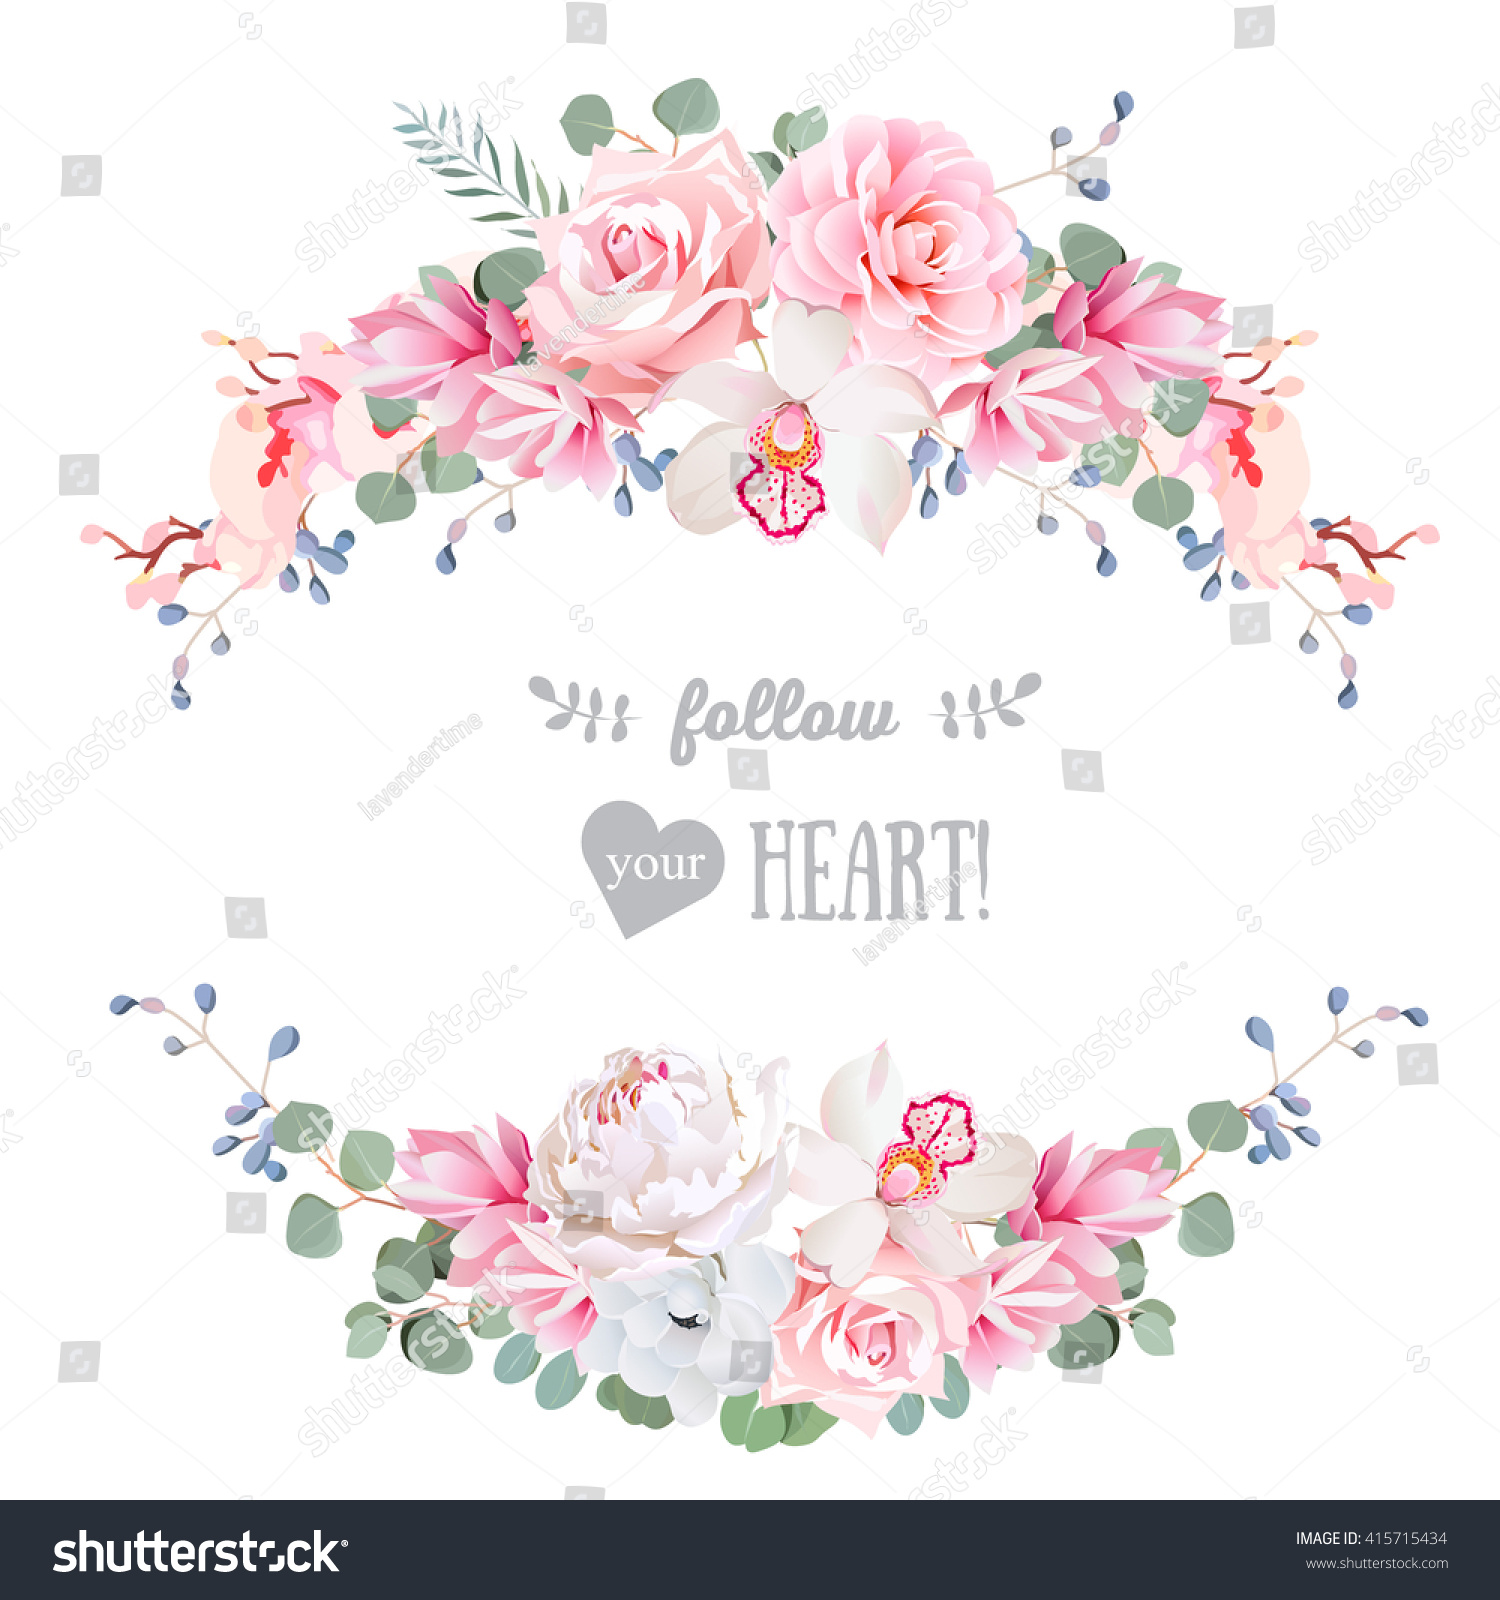 Cute wedding floral vector design frame stock vector 415715434 cute wedding floral vector design frame rose peony orchid anemone pink mightylinksfo Choice Image